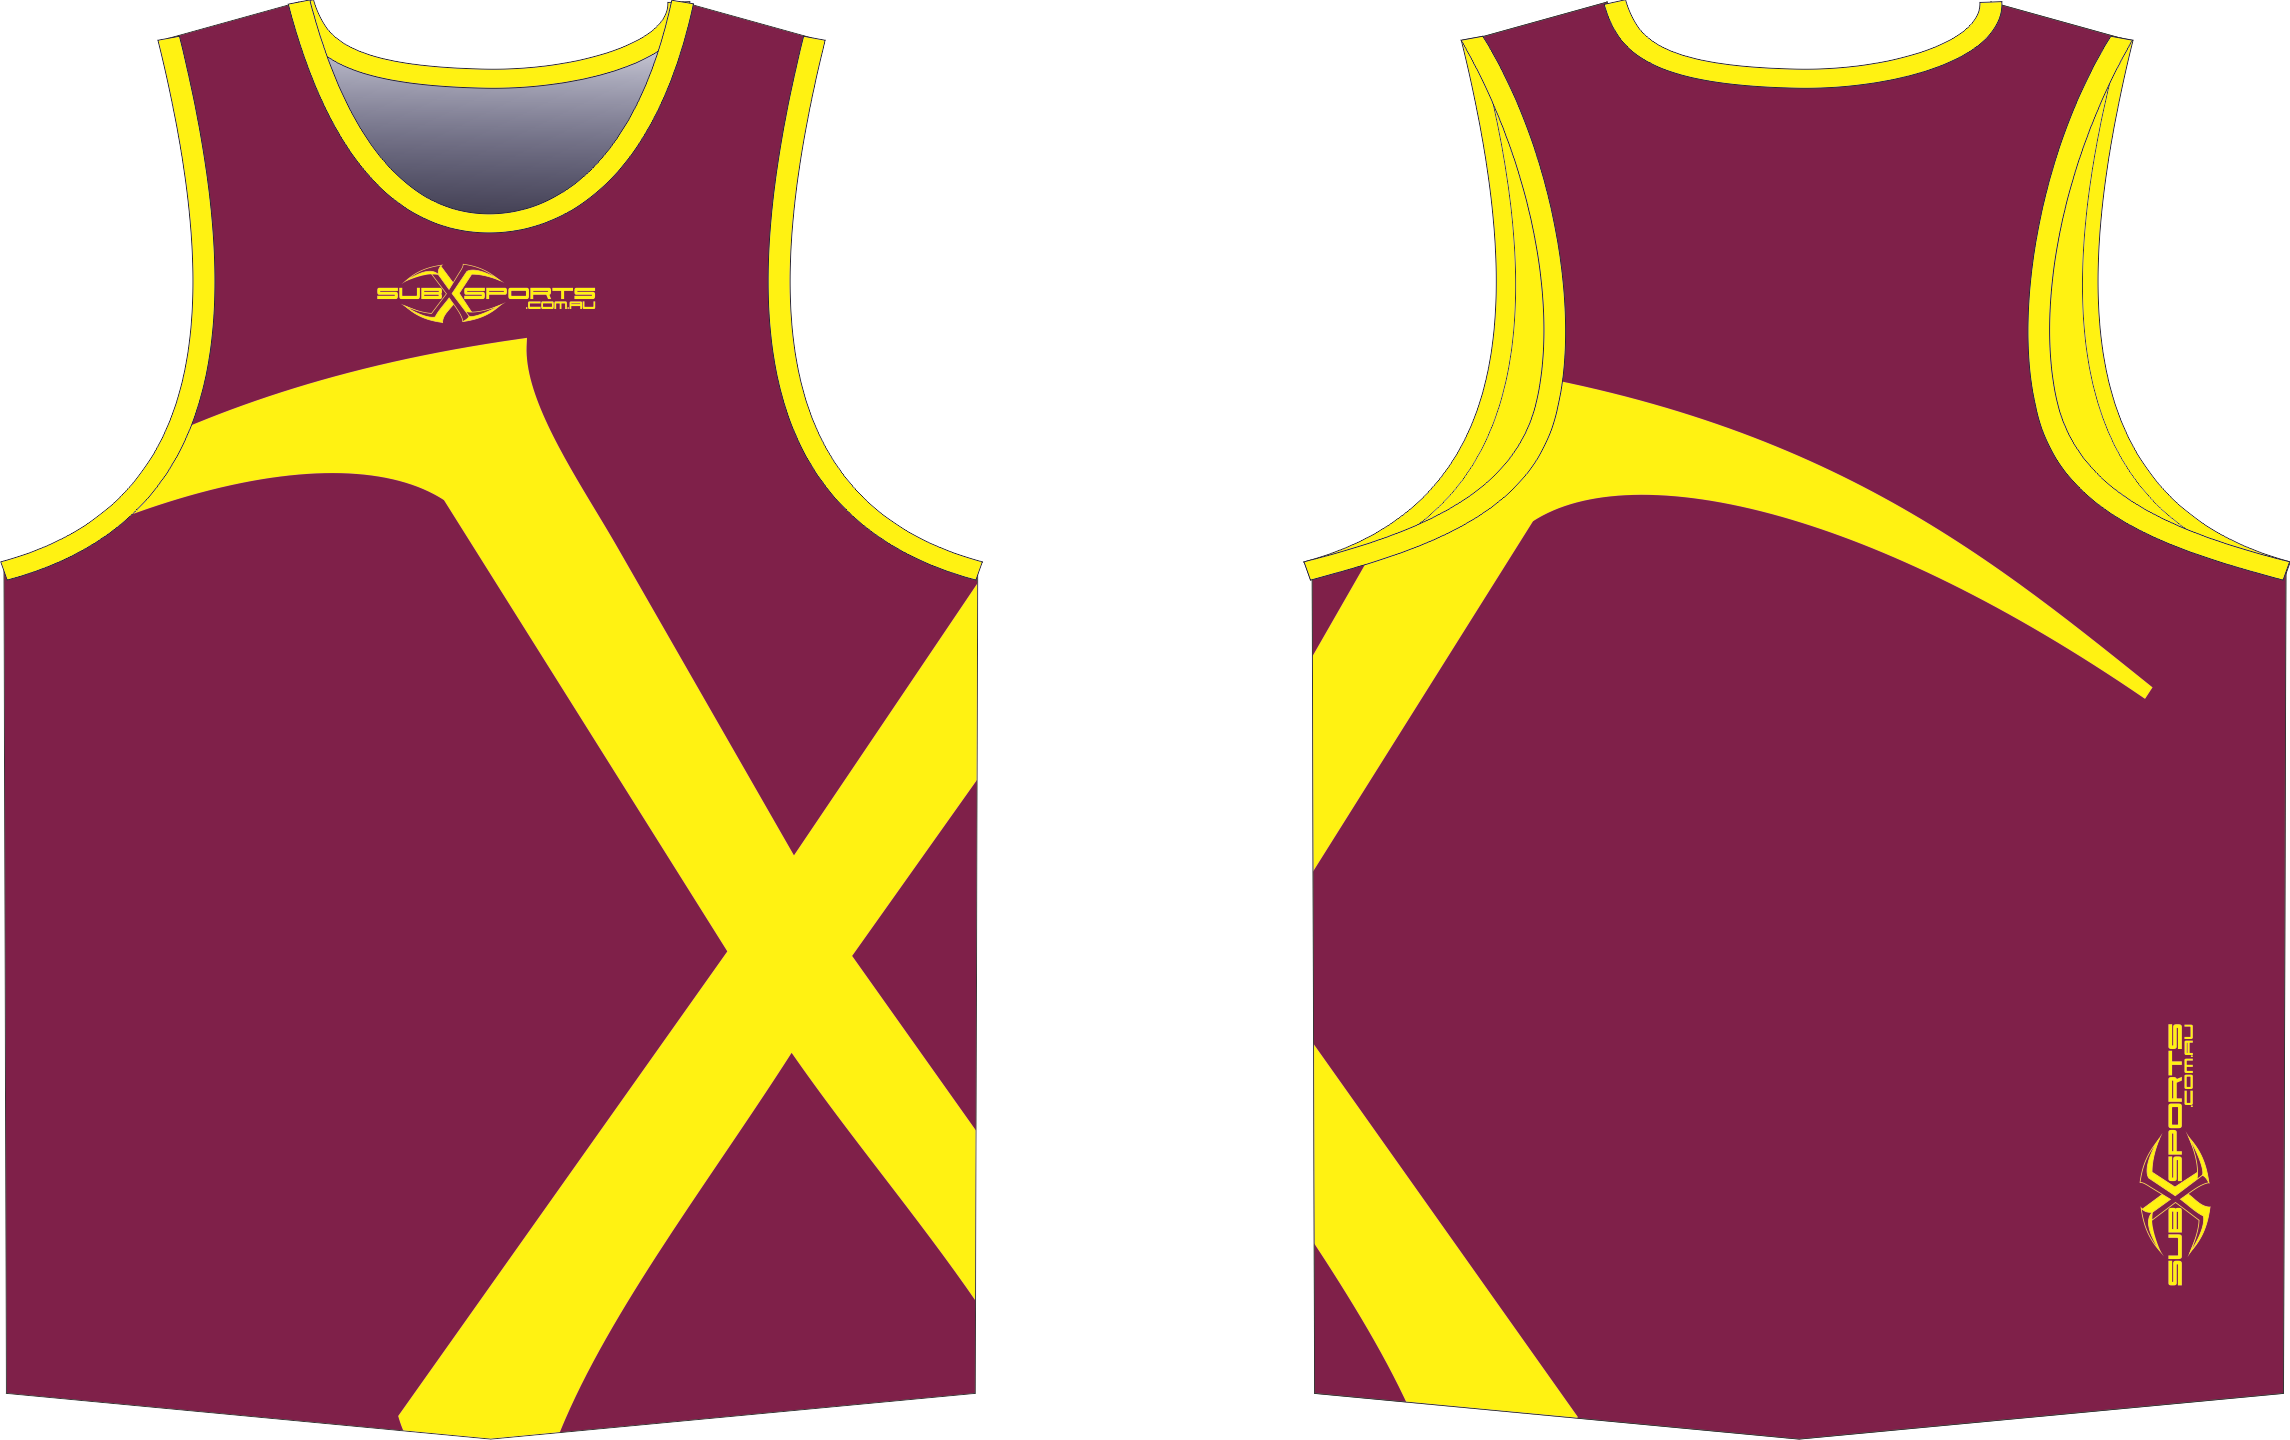 X301XS maroon gold Singlet.png